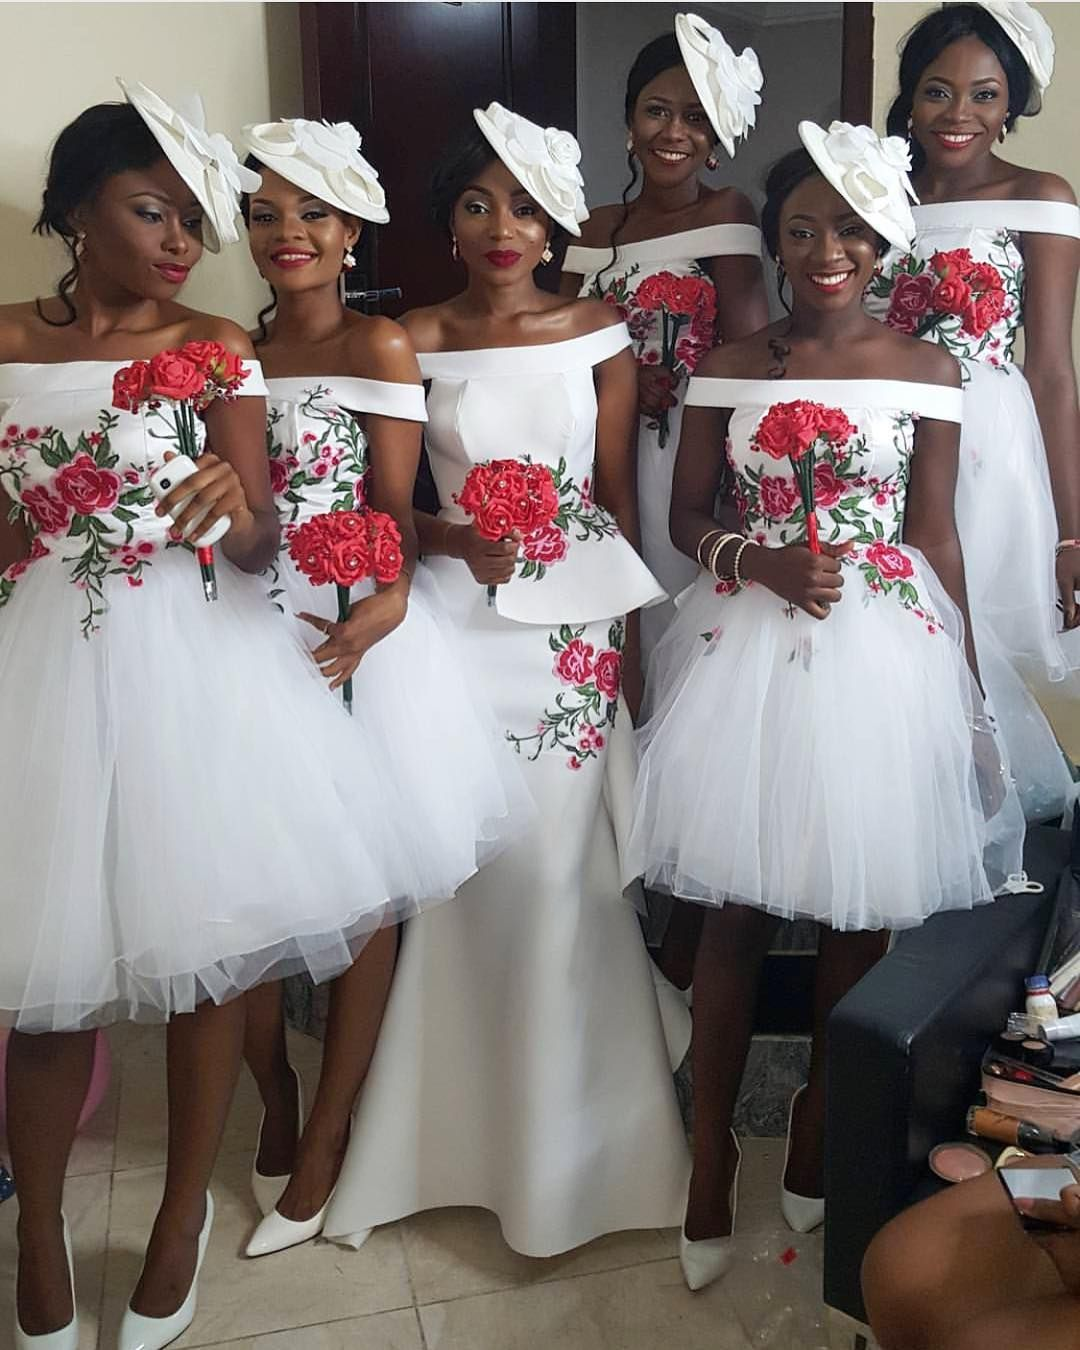 African Wedding: Too Much Sauce #Bridesmaids La Hot @divafashiva @phat